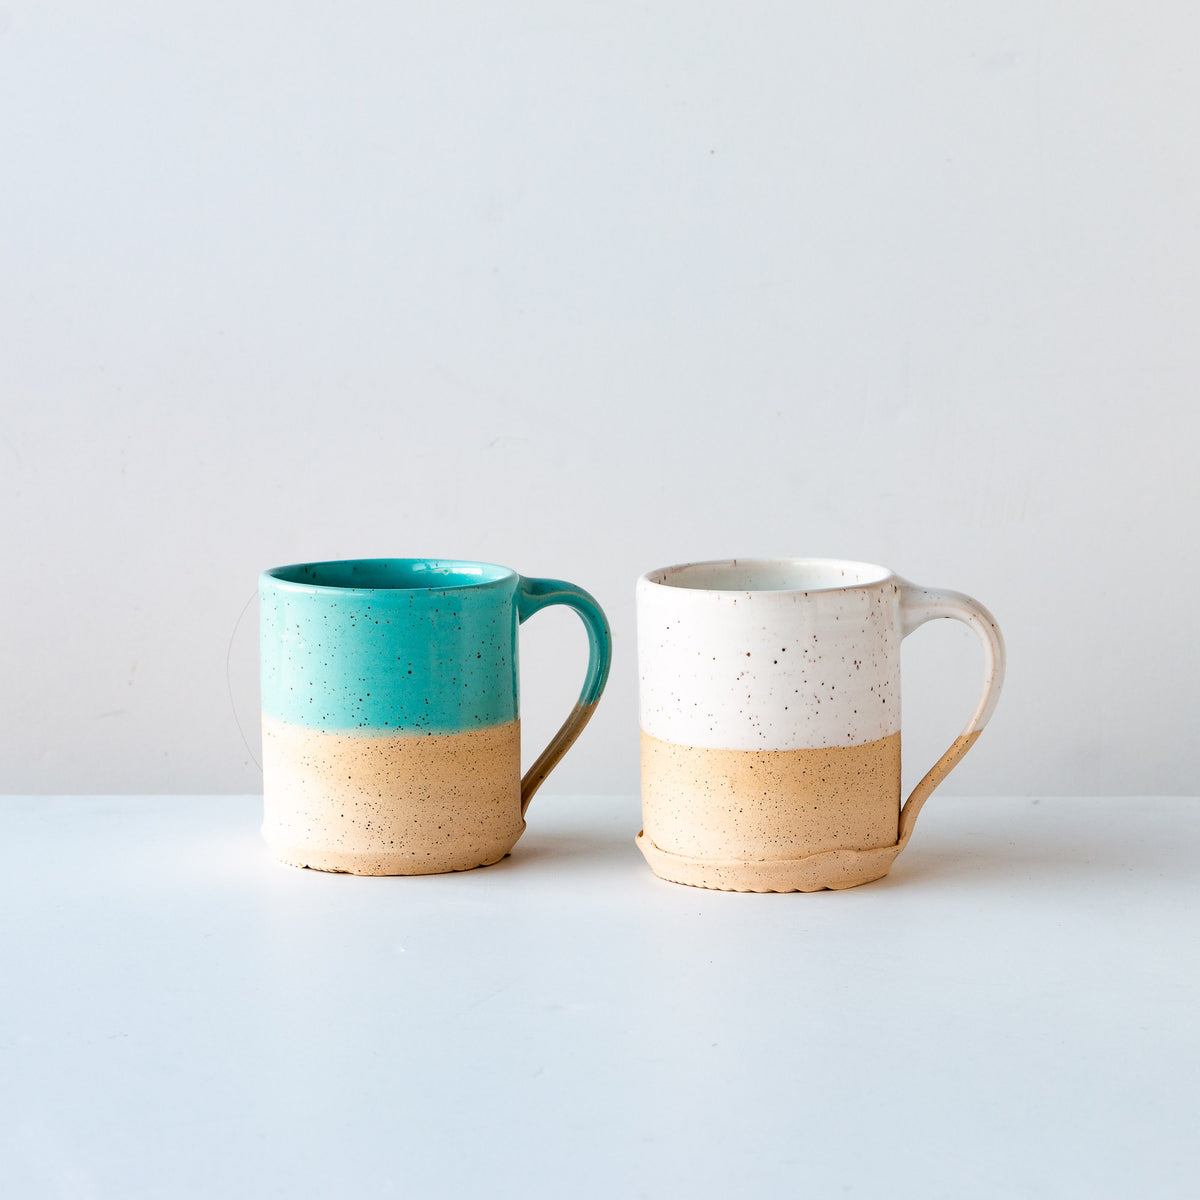 Turquoise Glaze & Wwite Glaze - Handcrafted Speckled Stoneware Large Mug / Small Mug - Sold by Chic & Basta